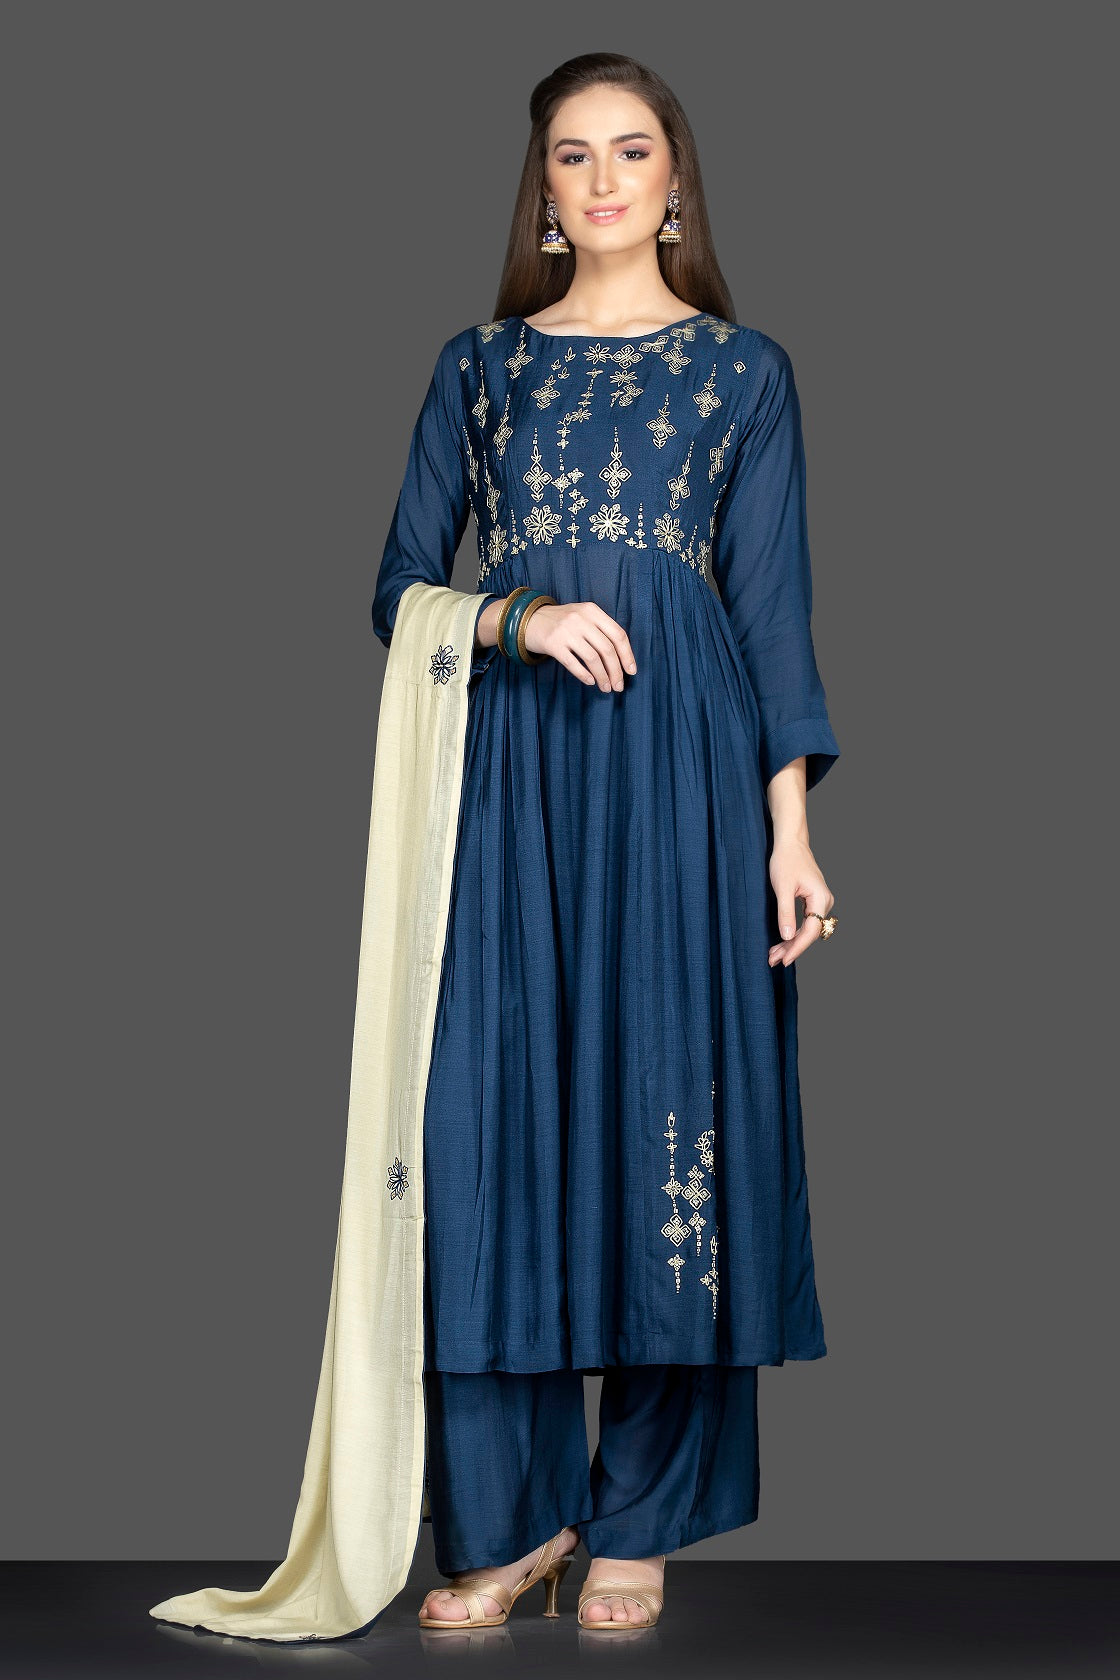 Buy lovely dark blue embroidered suit online in USA with palazzo and cream dupatta. Flaunt ethnic fashion on weddings and festive occasions with latest designer lehengas, Indian dresses, traditional Anarkali suits from Pure Elegance Indian clothing store in USA.-full view